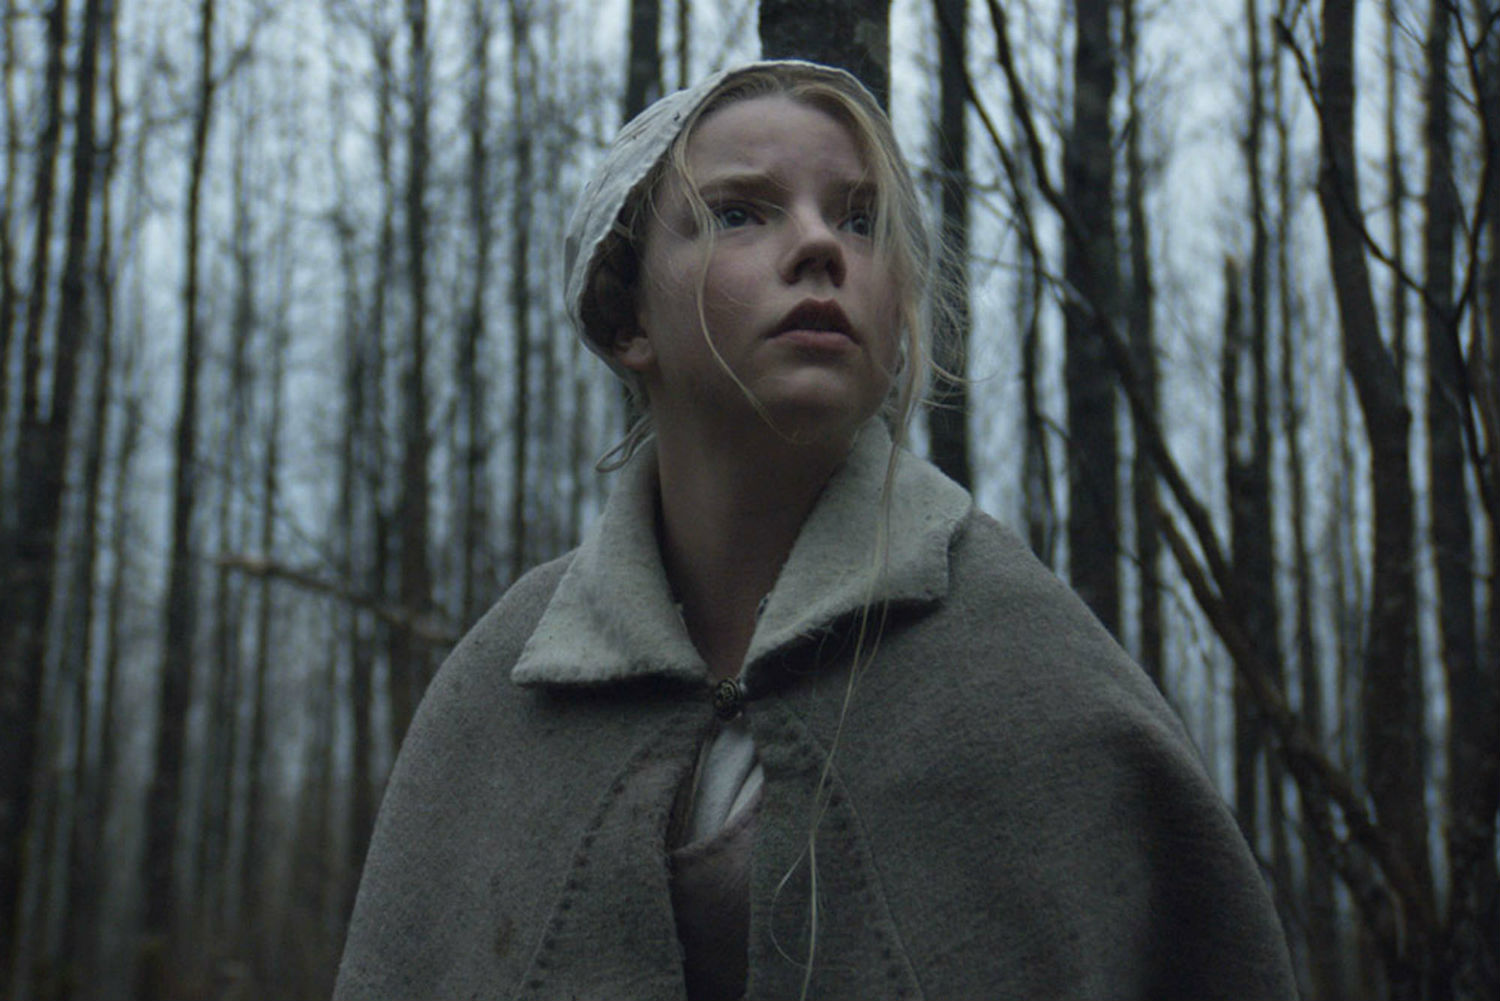 the witch film indie 2015 horror woods